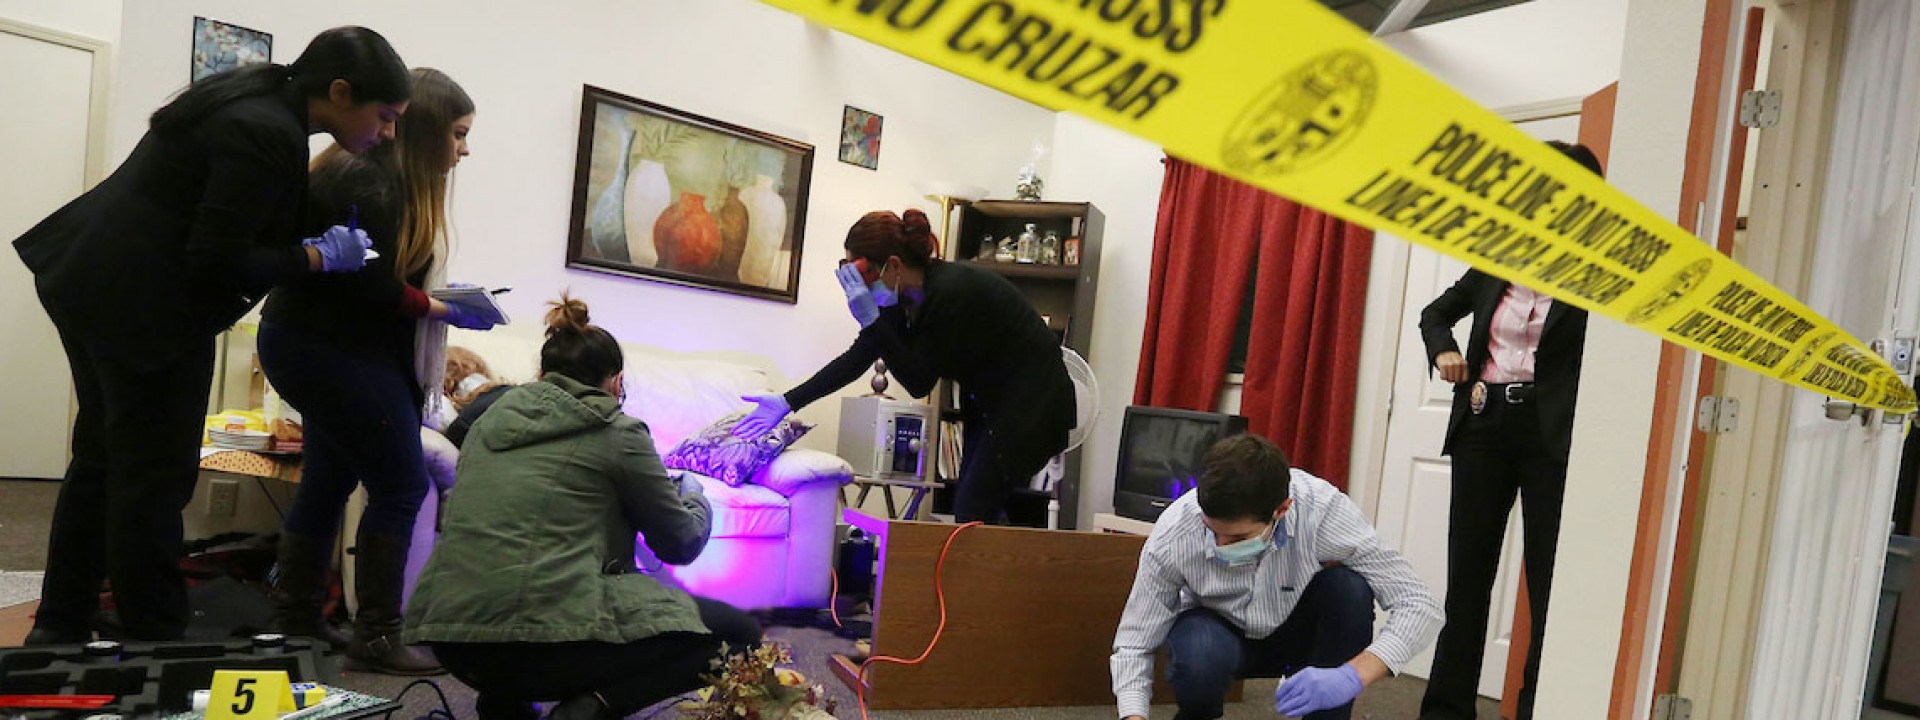 Image of a mock crime scene with caution tape and black lights, with forensic students investigating.